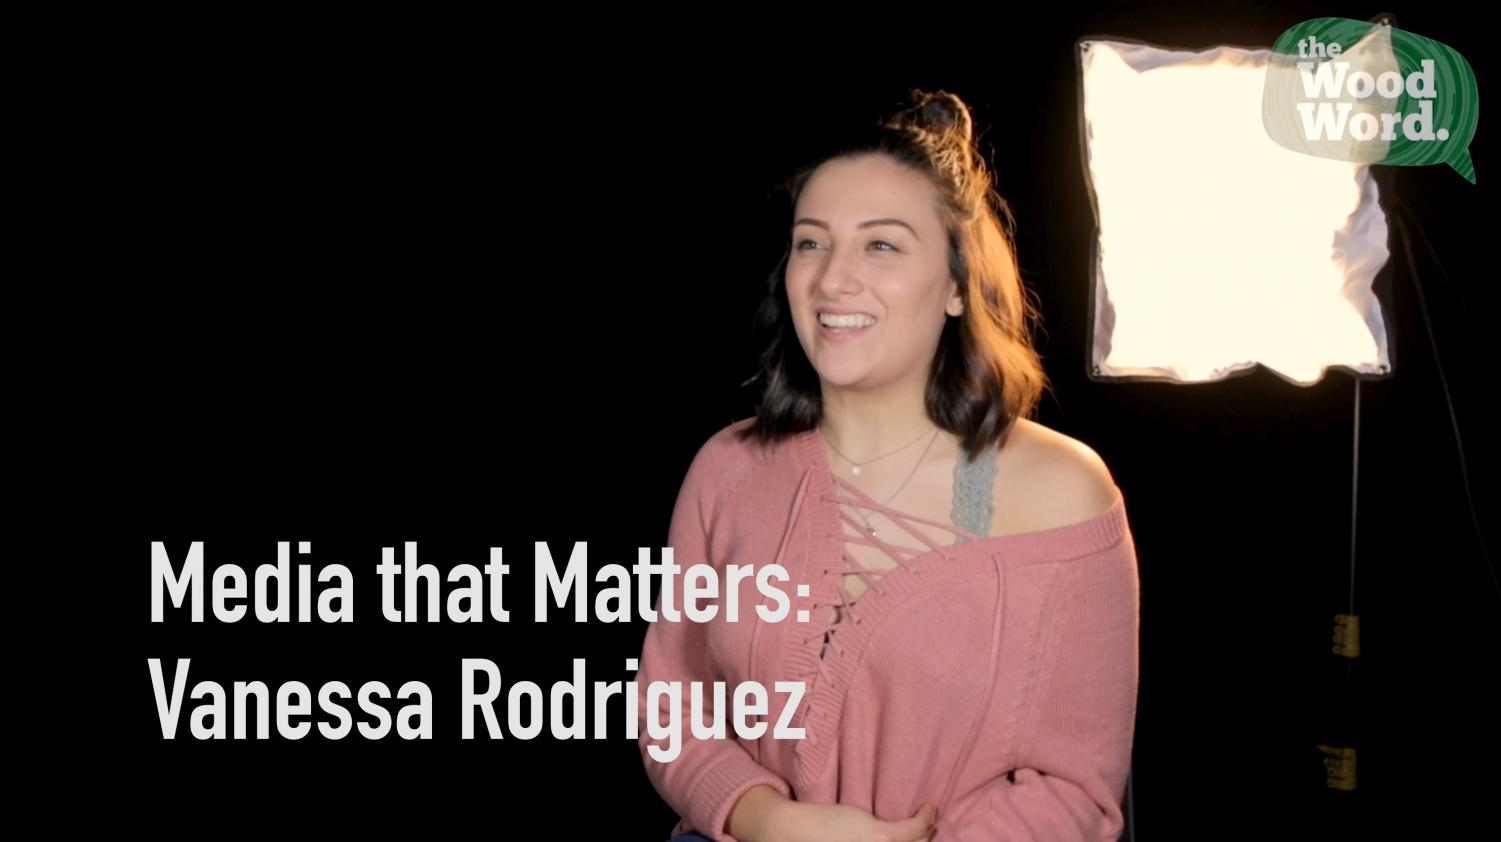 Media that Matters: Vanessa Rodriguez